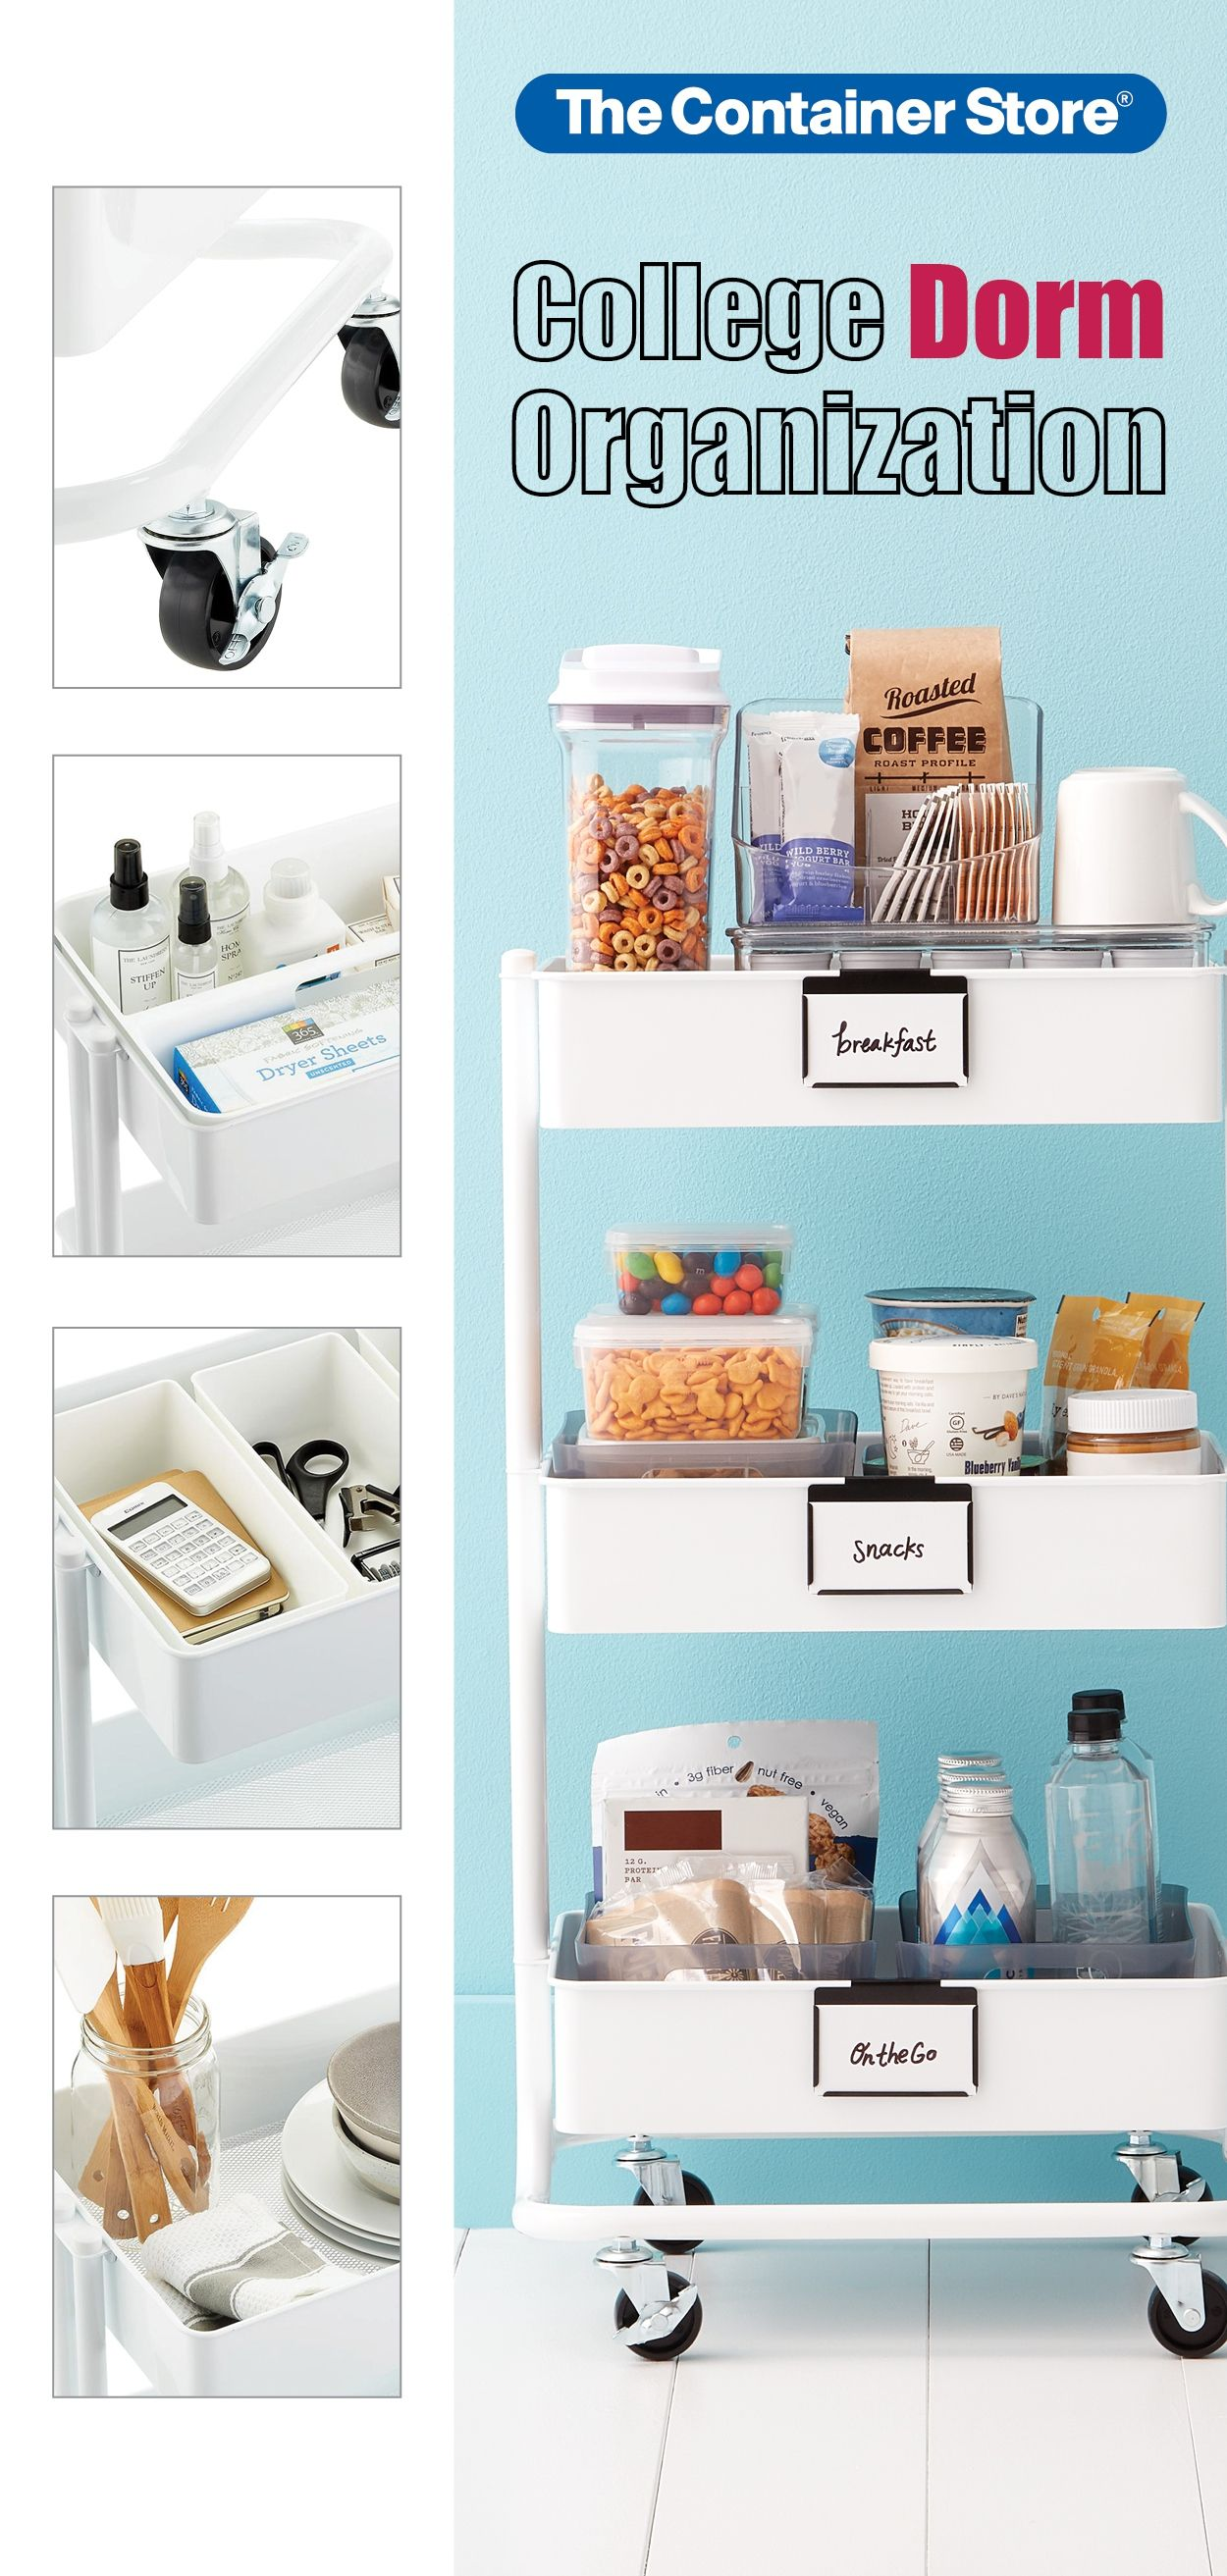 Find Dozens Of College Dorm Kitchen Bathroom Closet Desk Makeup And Jewelry Storage Solutions Her In 2020 Dorm Organization College Dorm Organization Dorm Kitchen